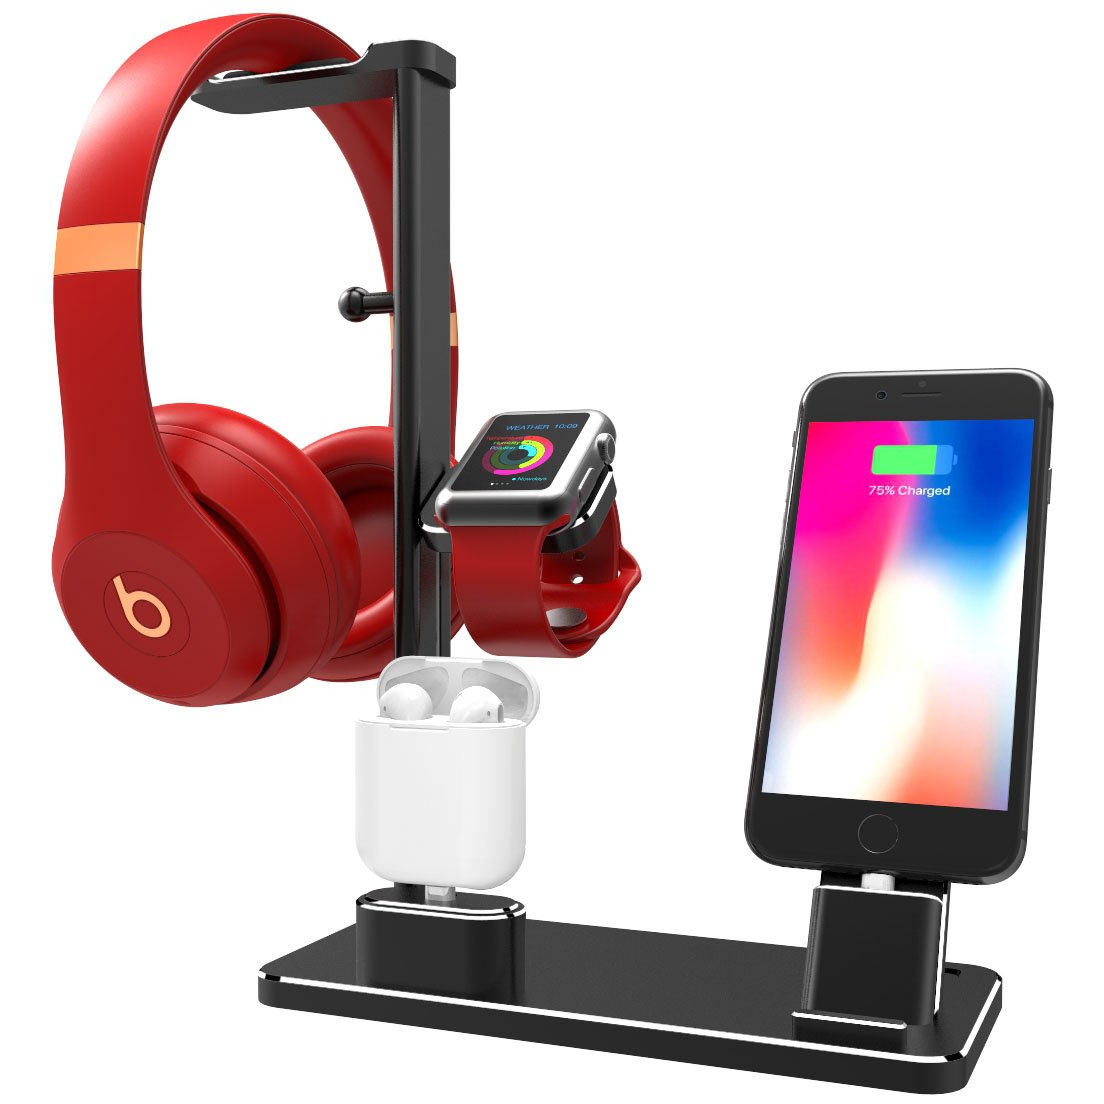 DHOUEA Compatible 6 in 1 Cell Phone Stand Replacement for Apple Watch Charging Dock Station Headphones Holder for Phone Xs Max XS XR X 7 7plus 6s 6plus iPad Apple Watch Series 4 3 2 1 AirPods (Black)